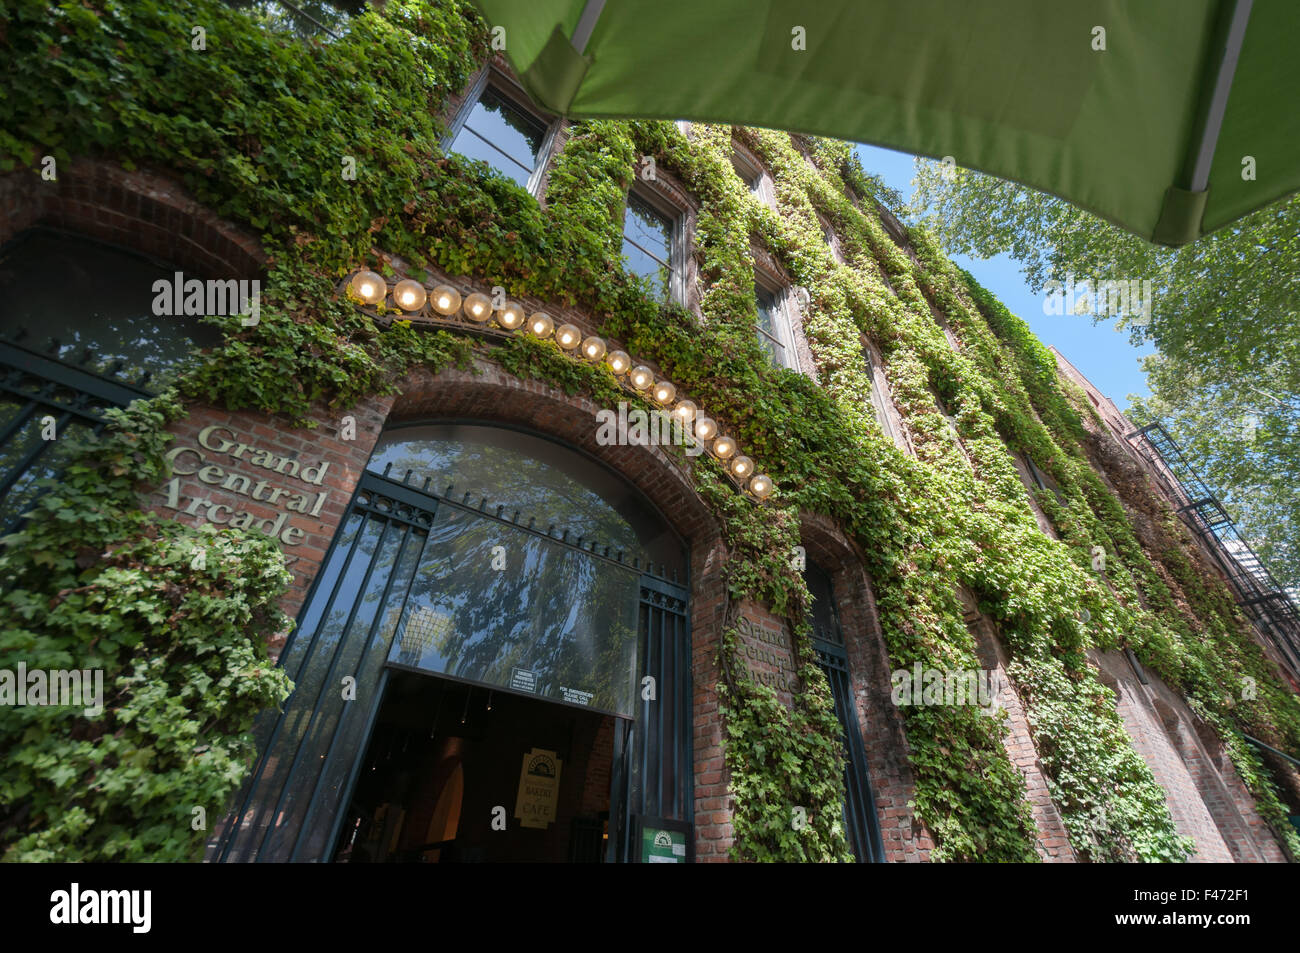 Grand Central Arcade entrance covered in Virginia Creeper - Stock Image